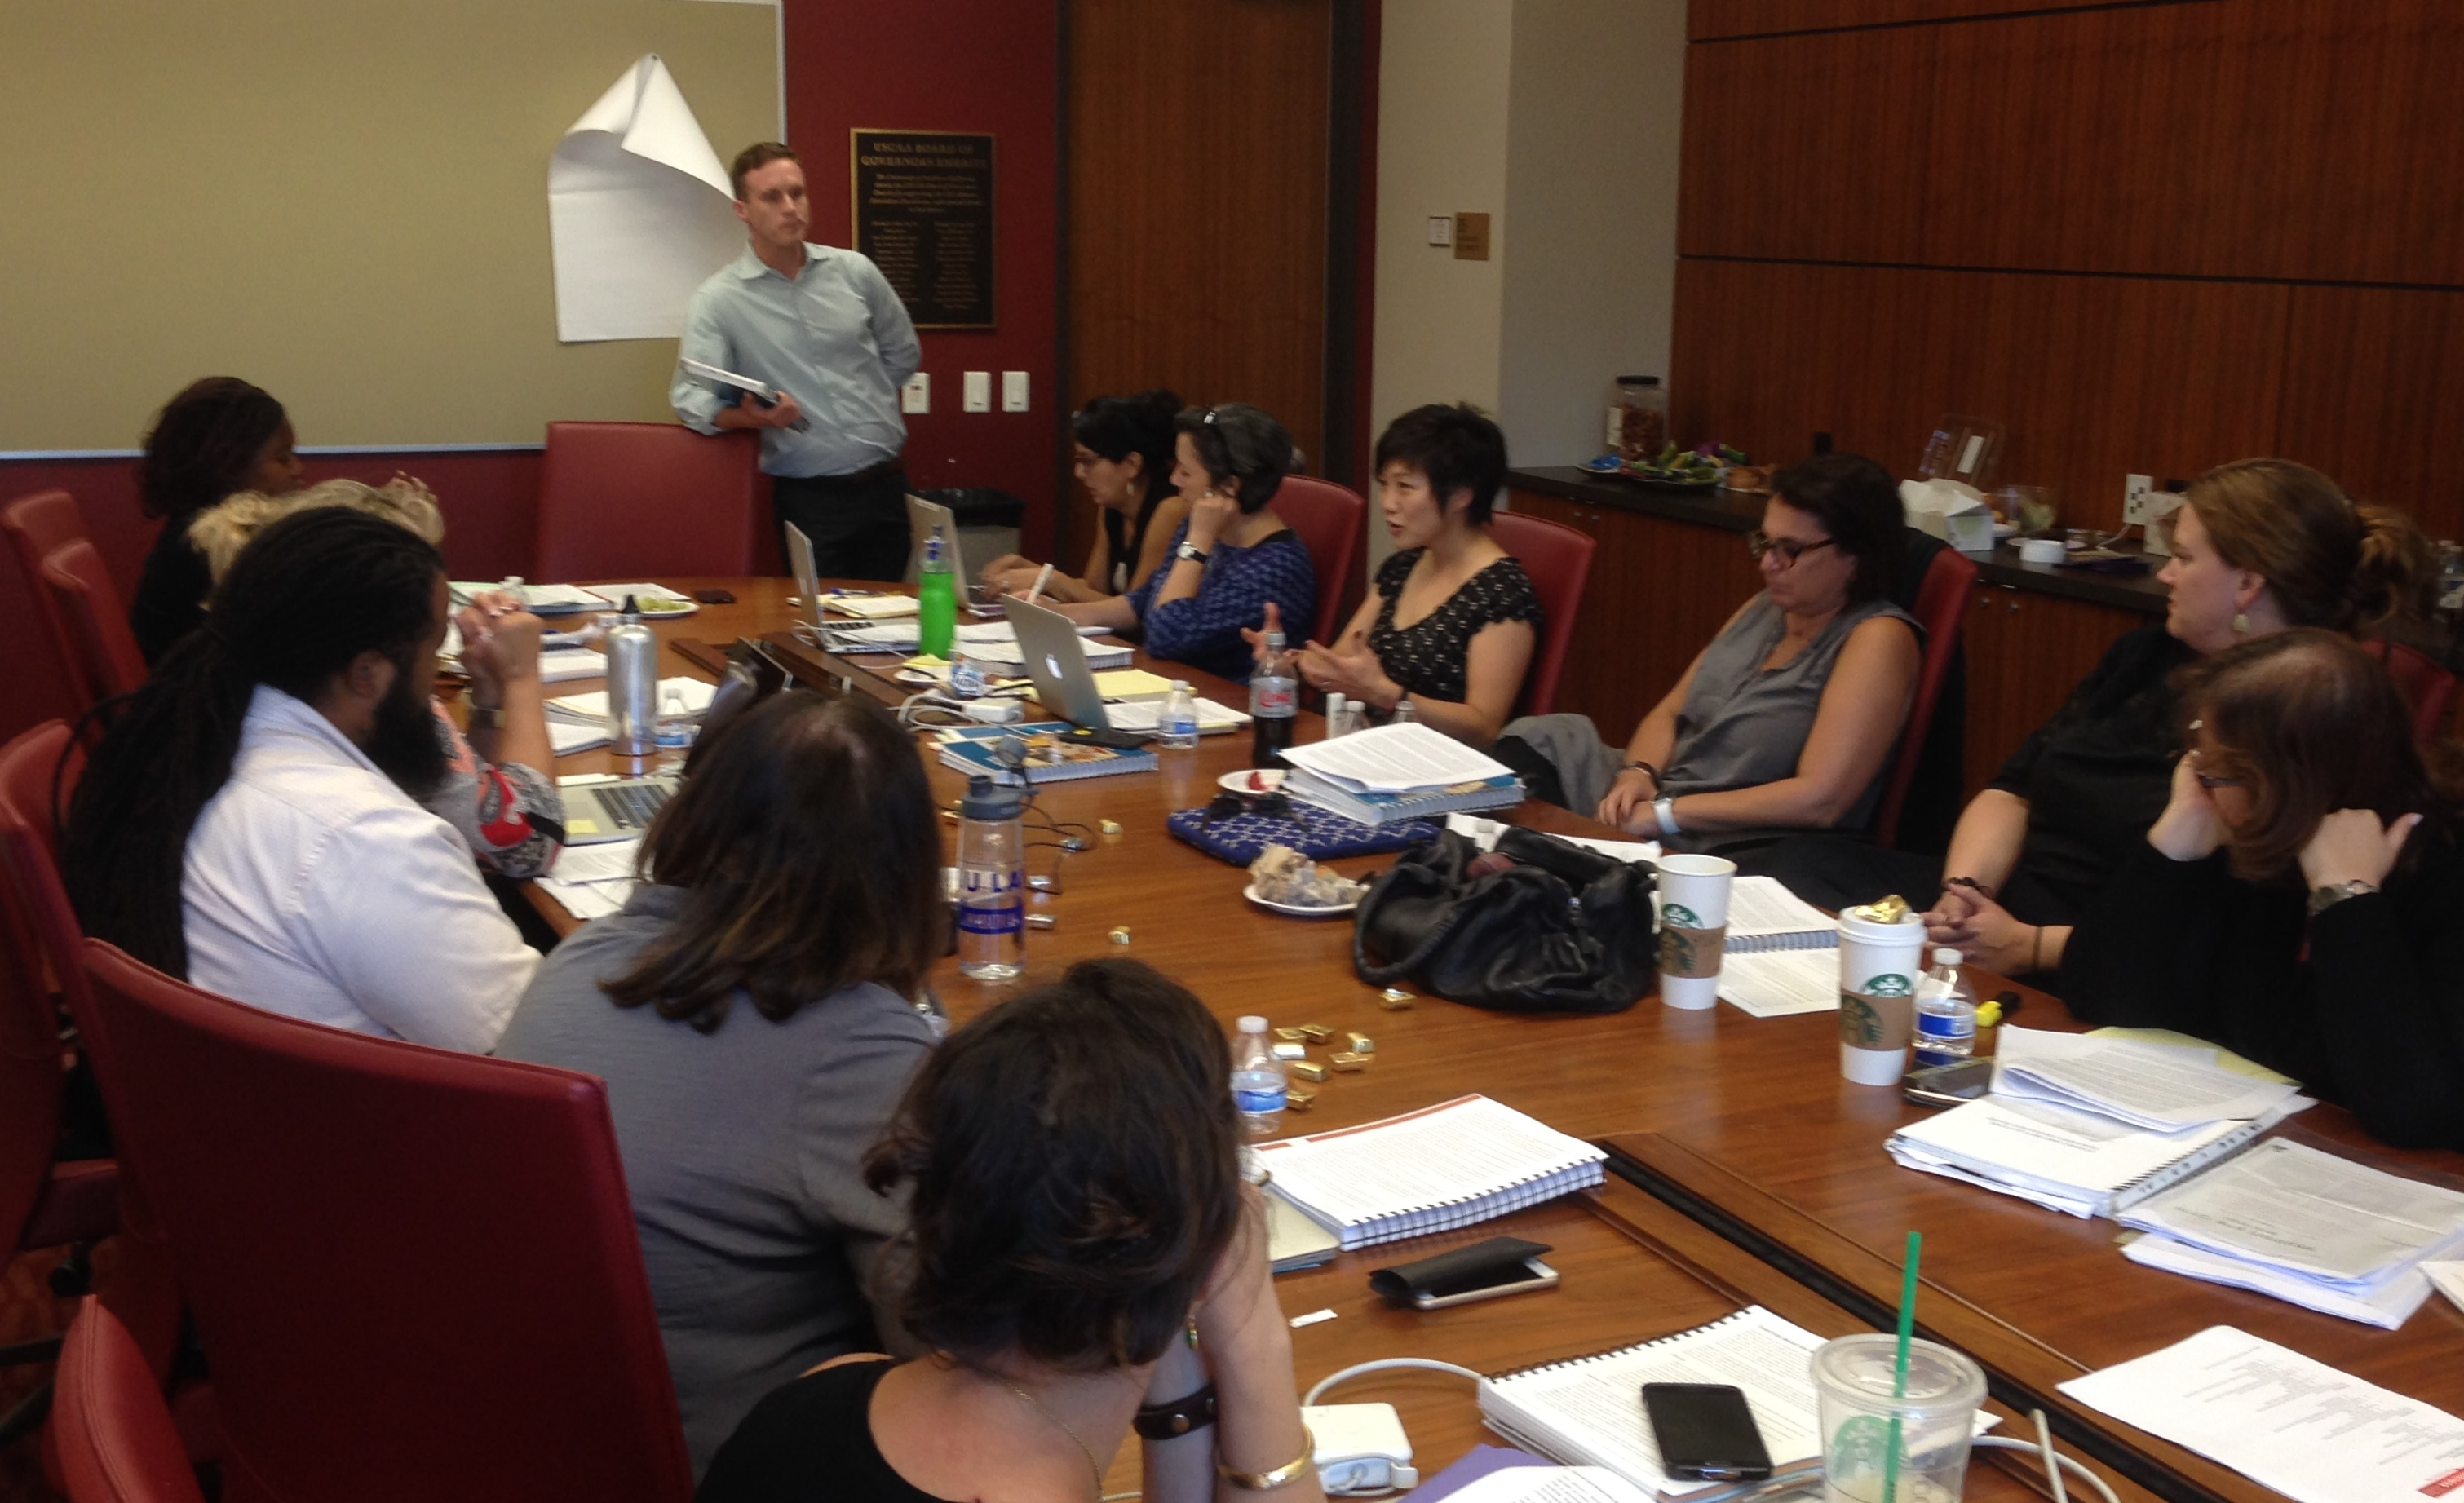 Holocaust Education trainers at USC Shoah Foundation for professional development seminar